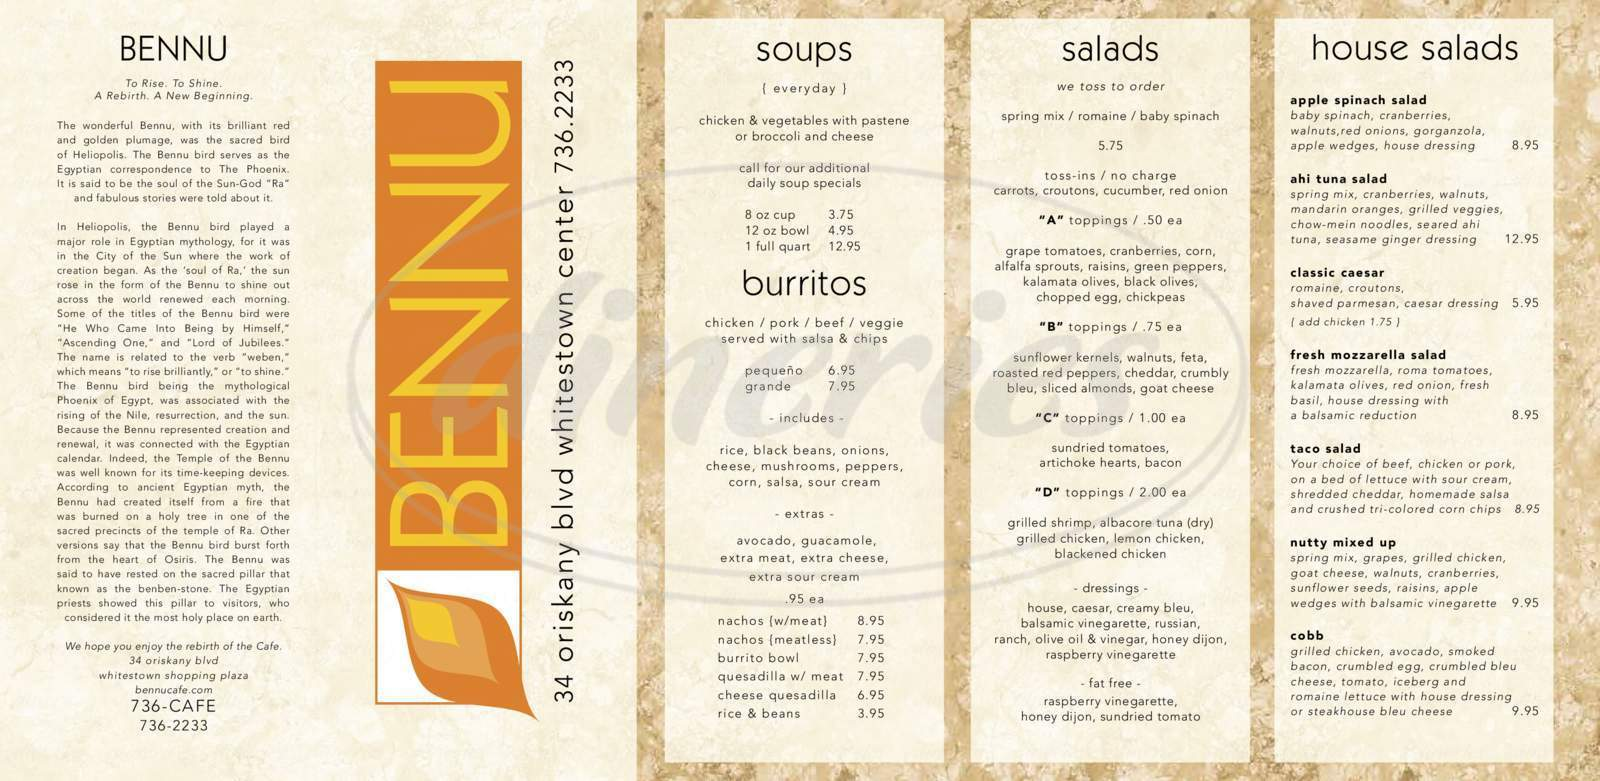 menu for Bennu Cafe